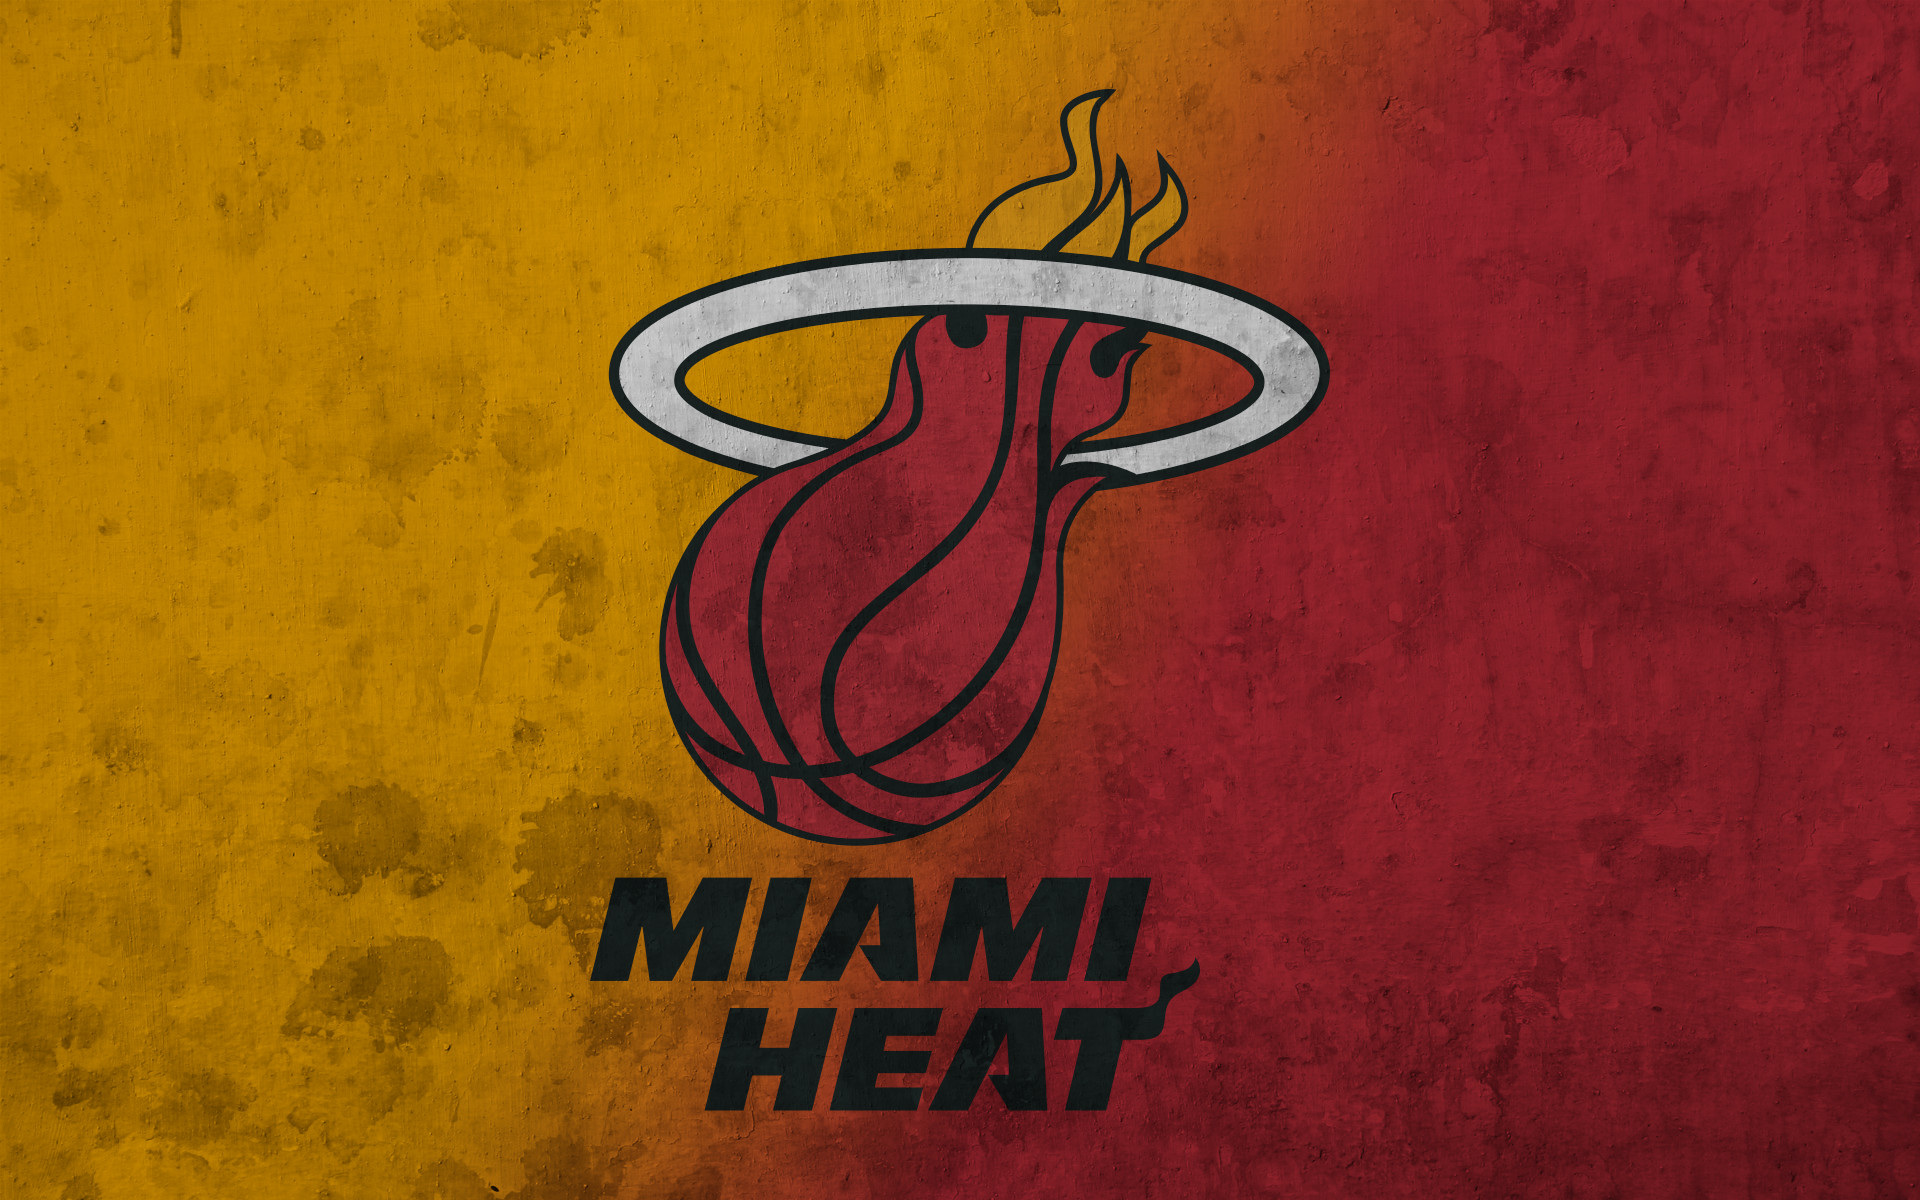 Miami Heat Wallpaper HD 72 images 1920x1200